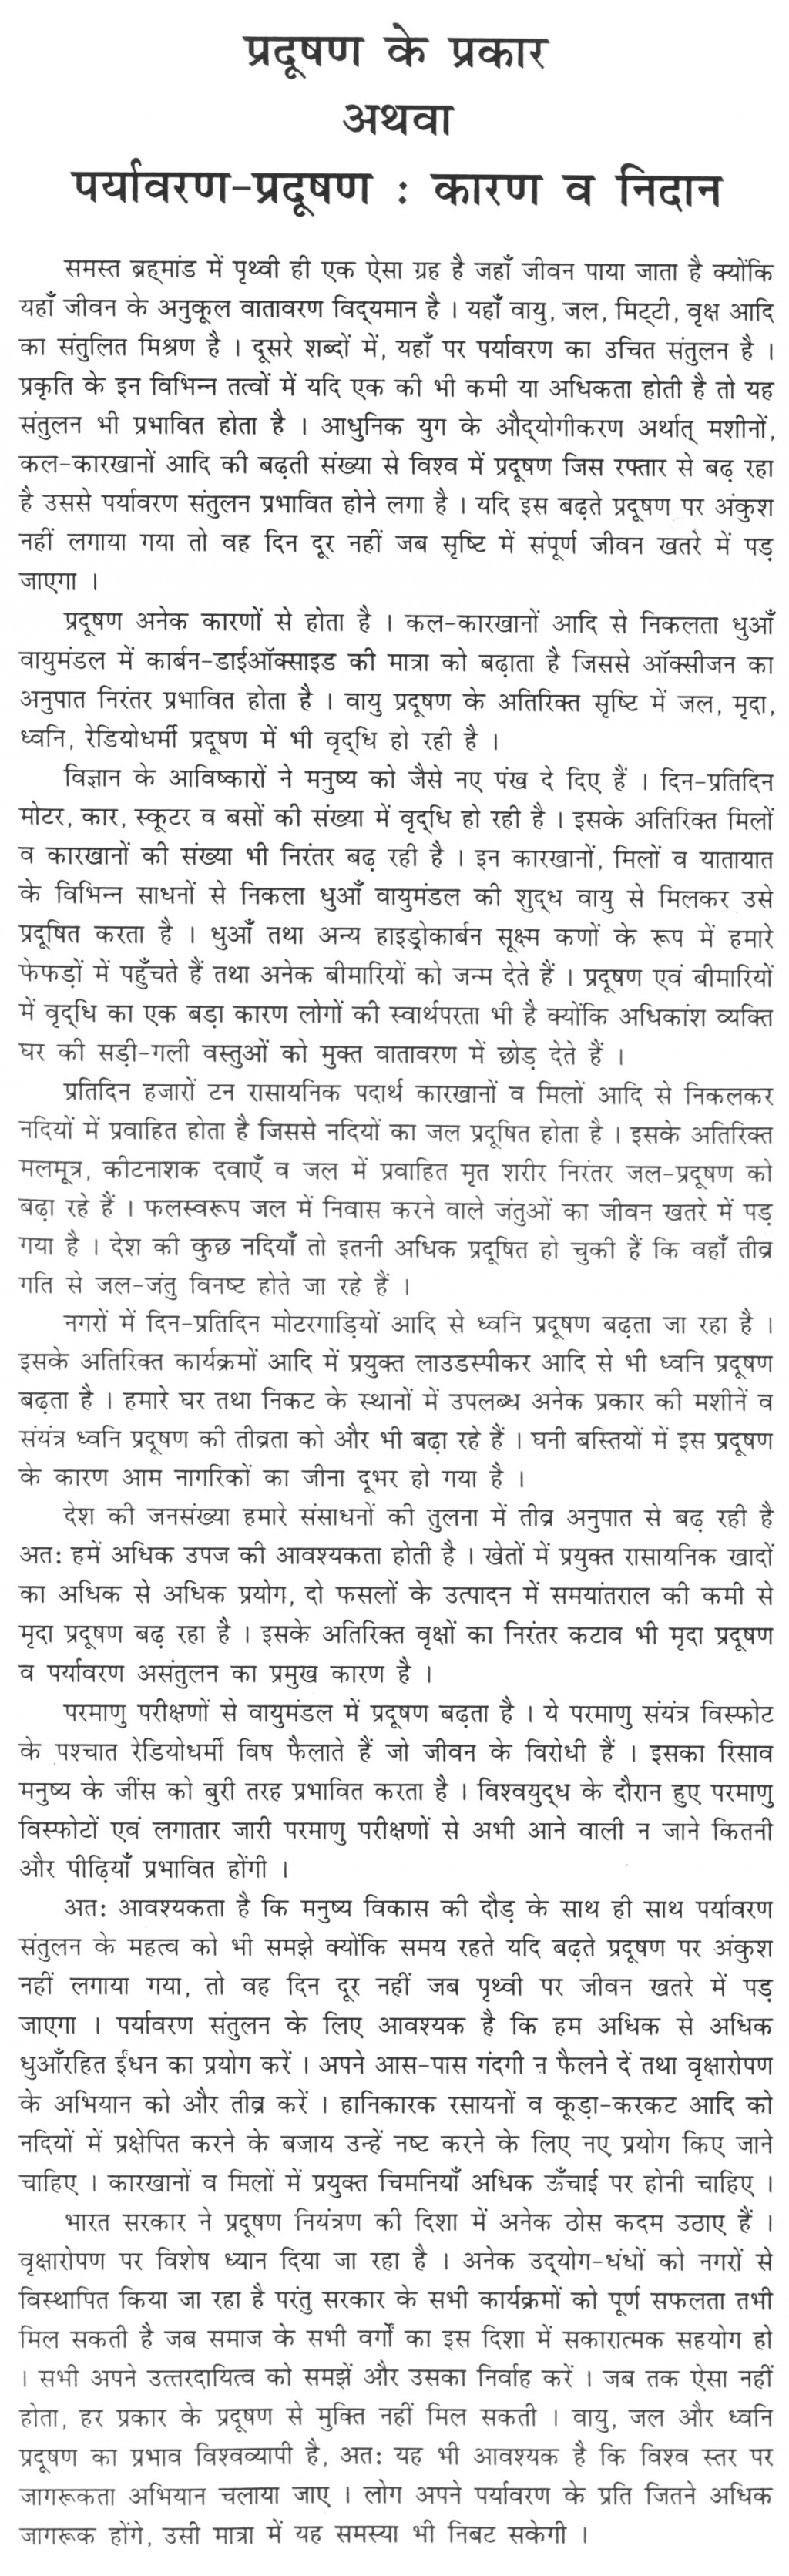 014 Good Habits Essay In Hindi Exceptional Bad Eating Habit Large